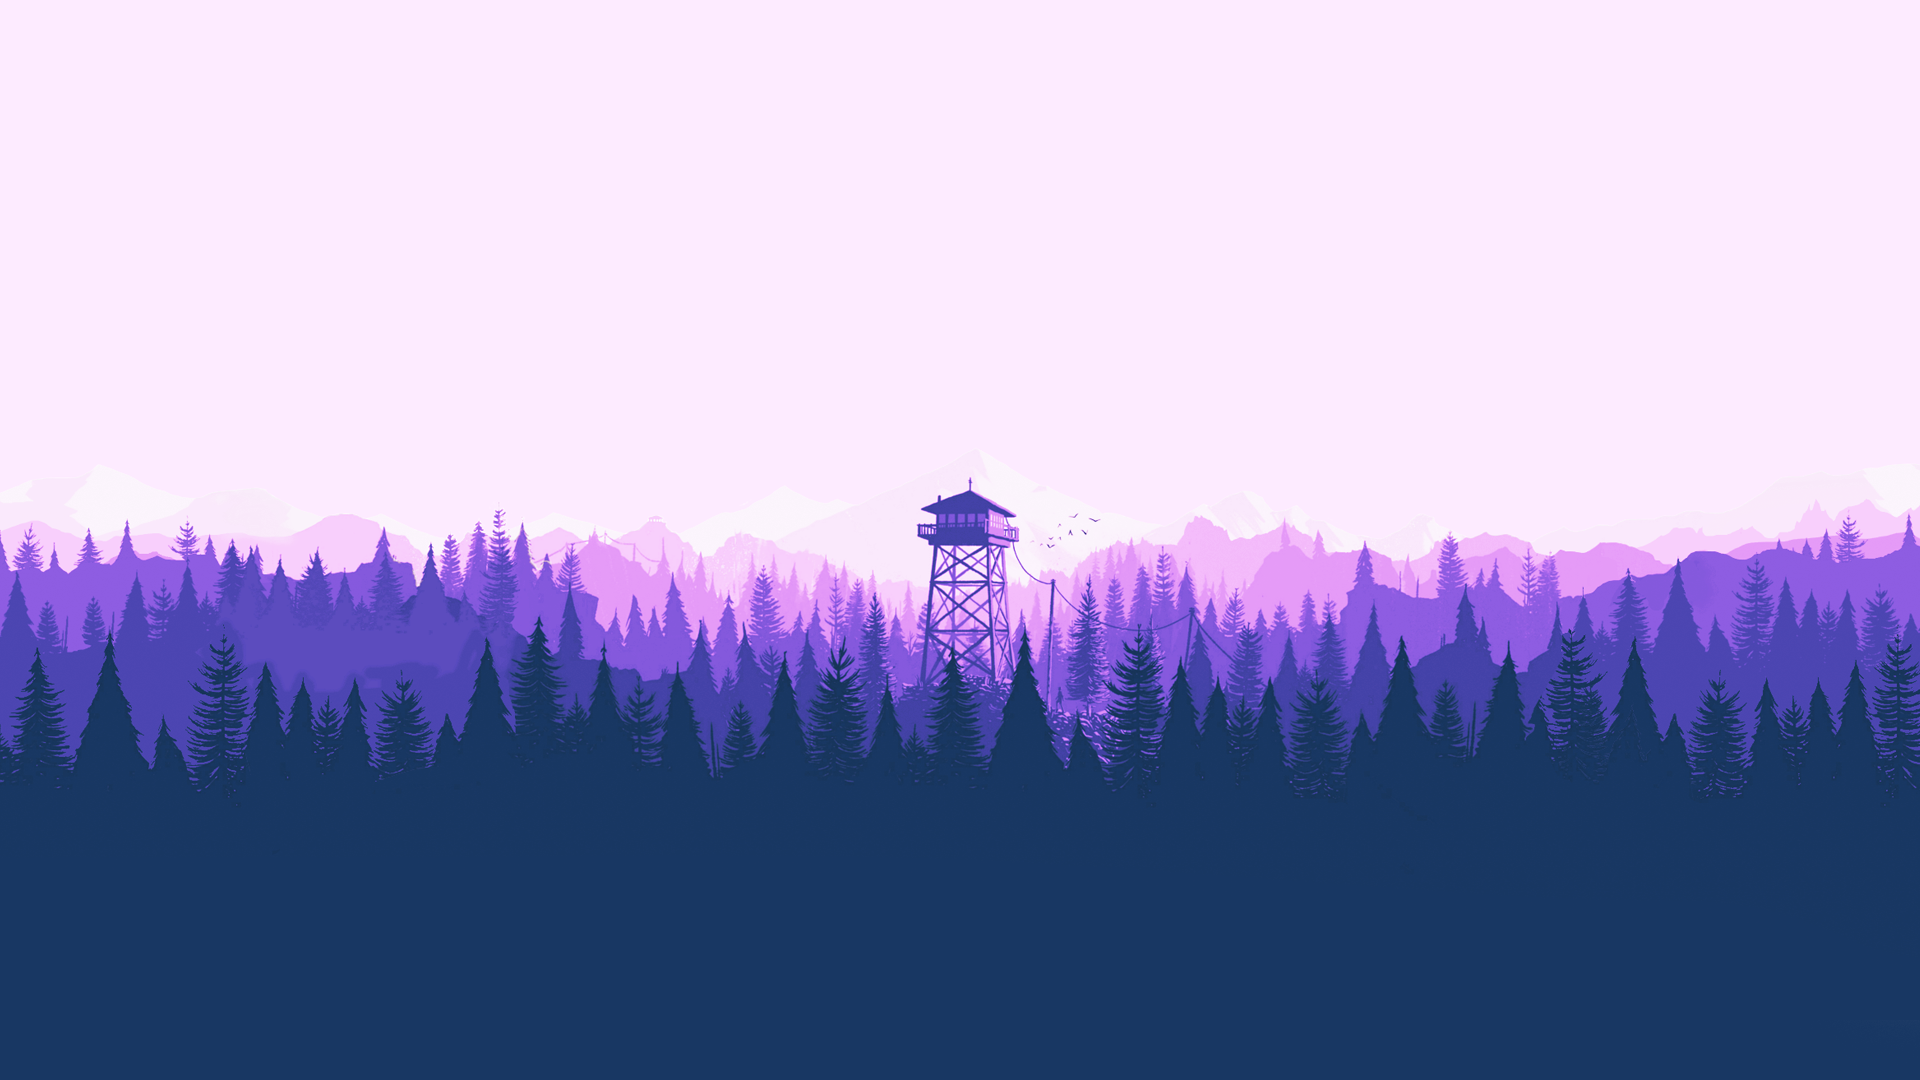 1920x1080 Vaporwave Version Of The Classic Firewatch Wallpaper Need Trendy Iphone7 I Vaporwave Wallpaper Desktop Wallpaper Art Background Images Wallpapers